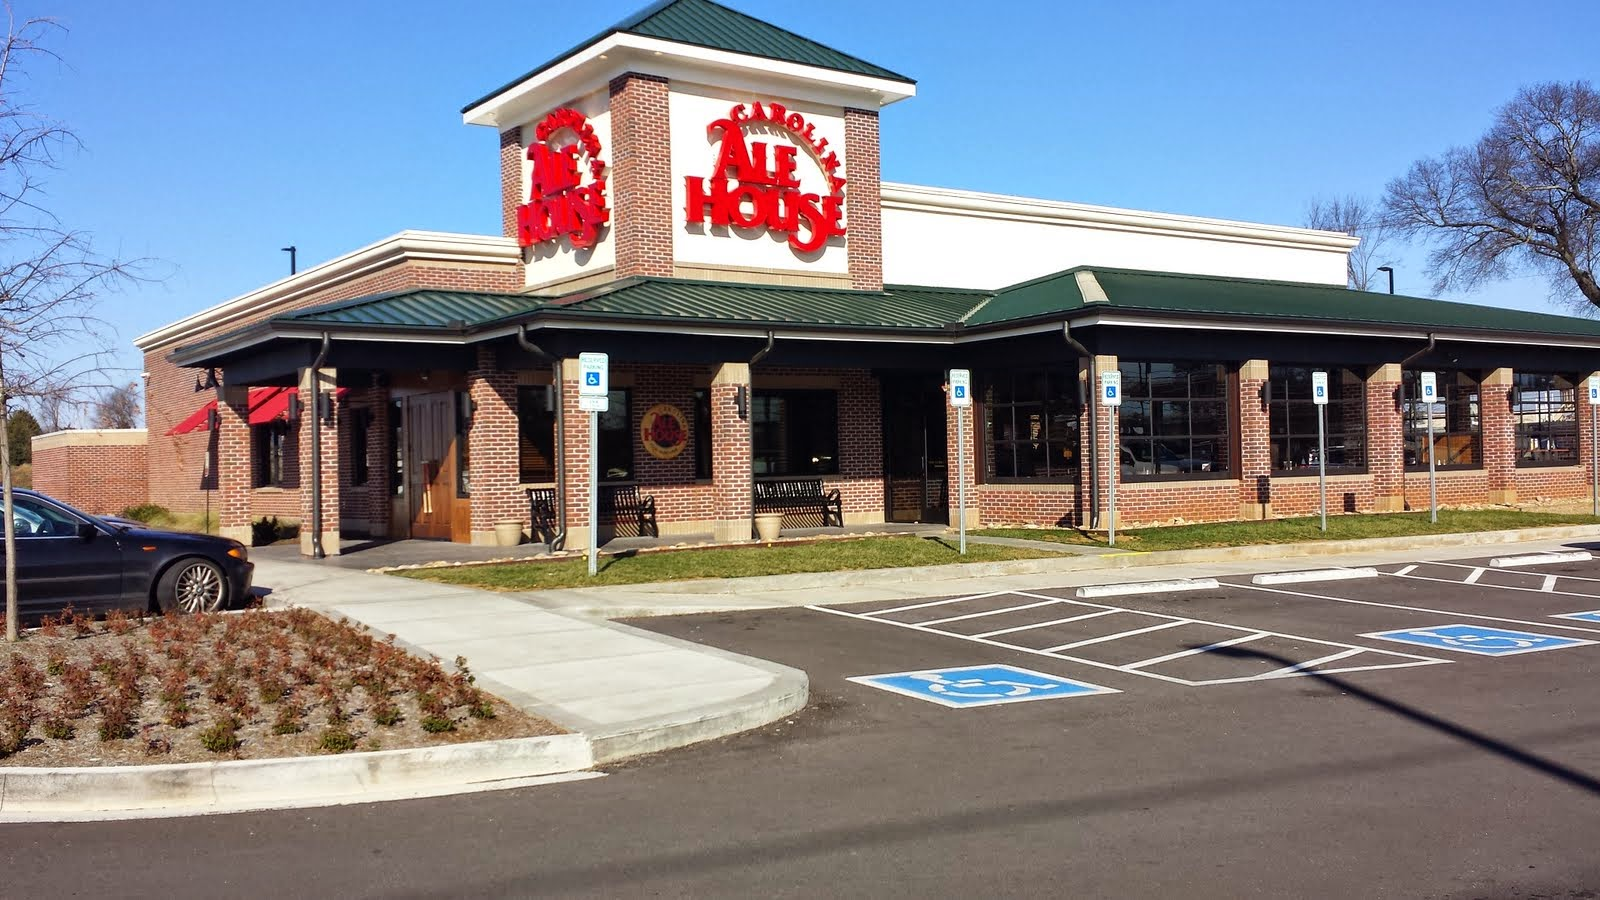 Big daddy dave another restaurant chain comes to town for Carolina house